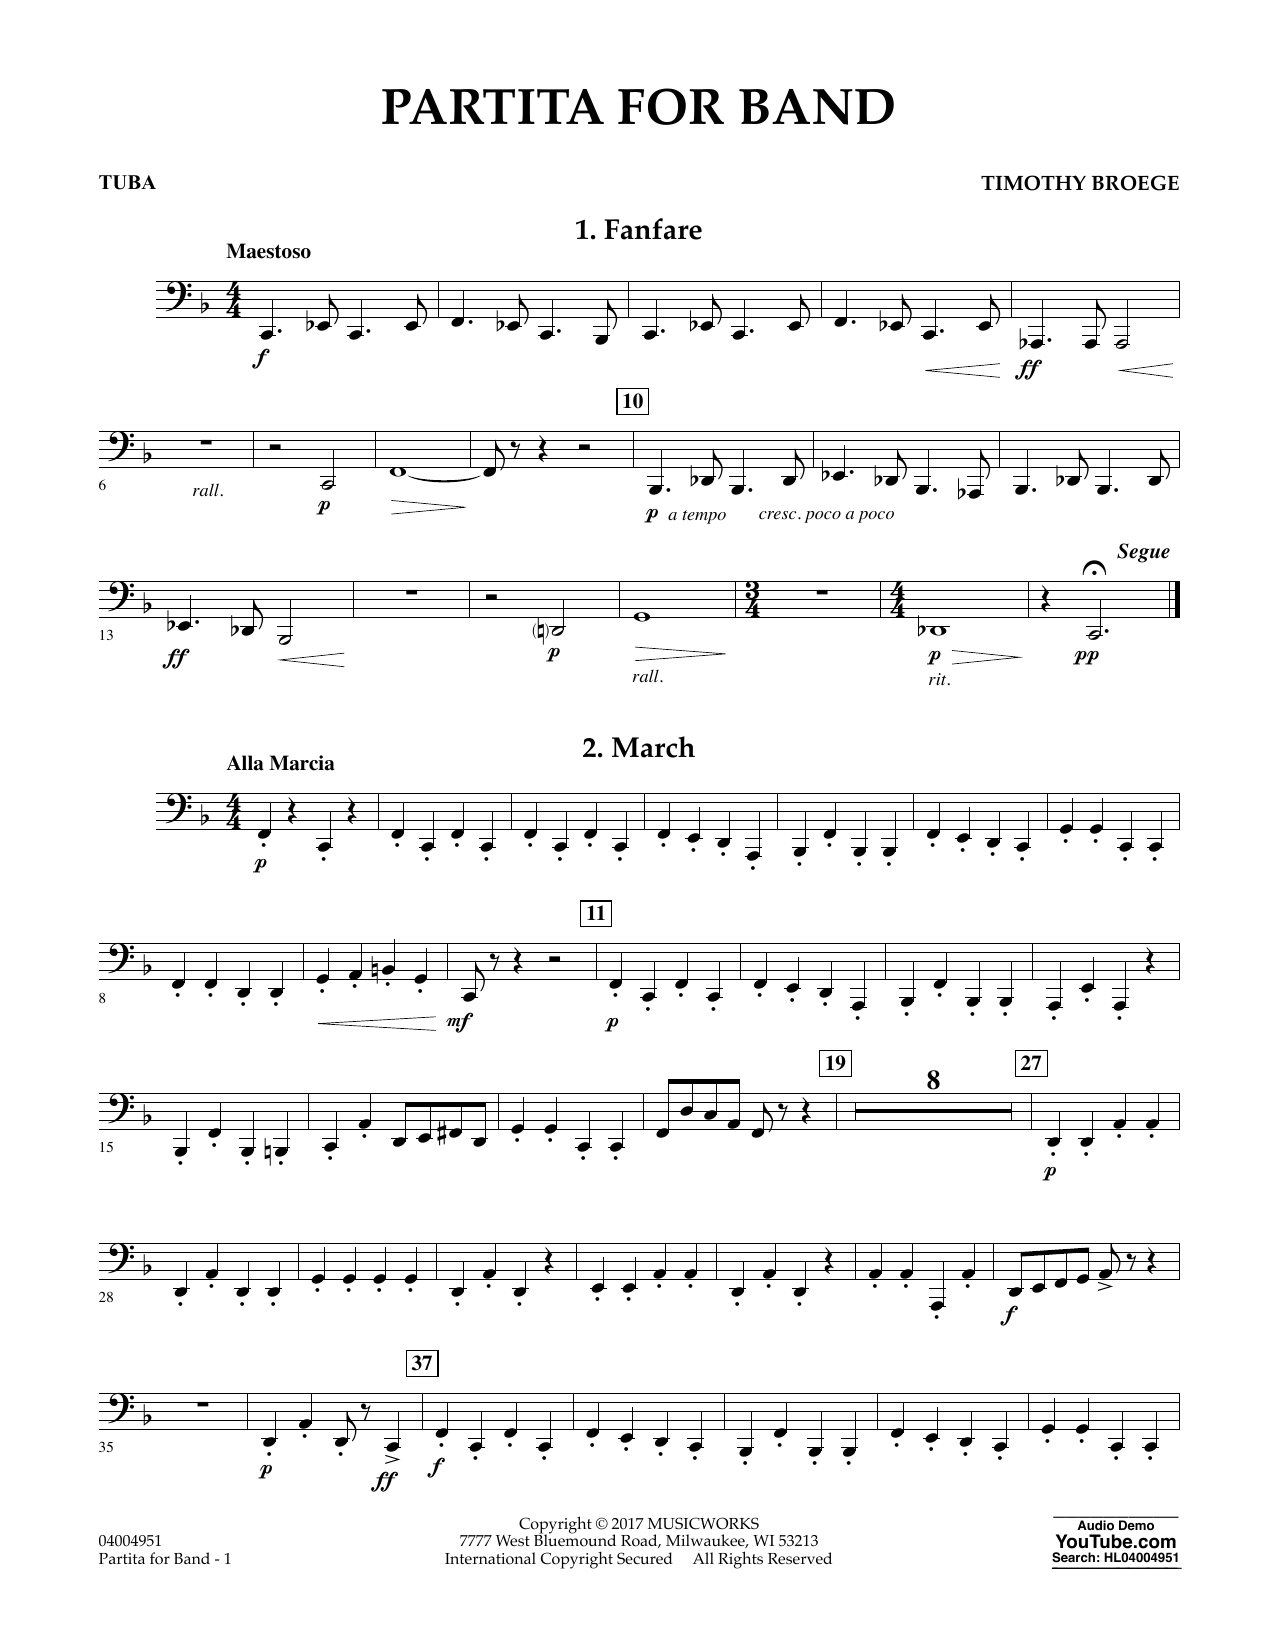 Timothy Broege Partita for Band - Tuba sheet music notes and chords. Download Printable PDF.